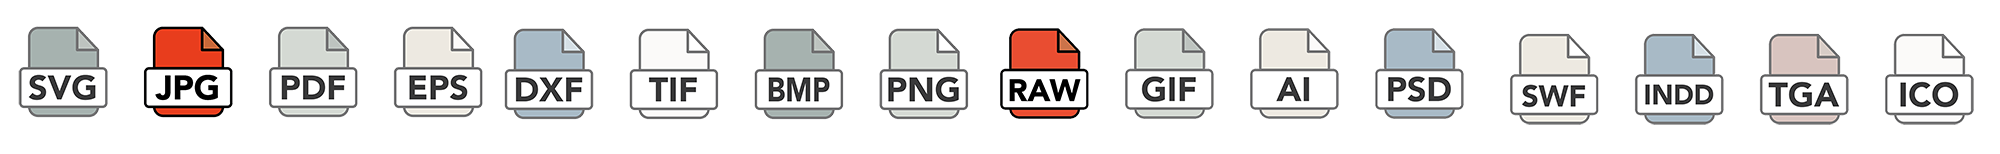 jpeg JPEG RAW raw file types icon